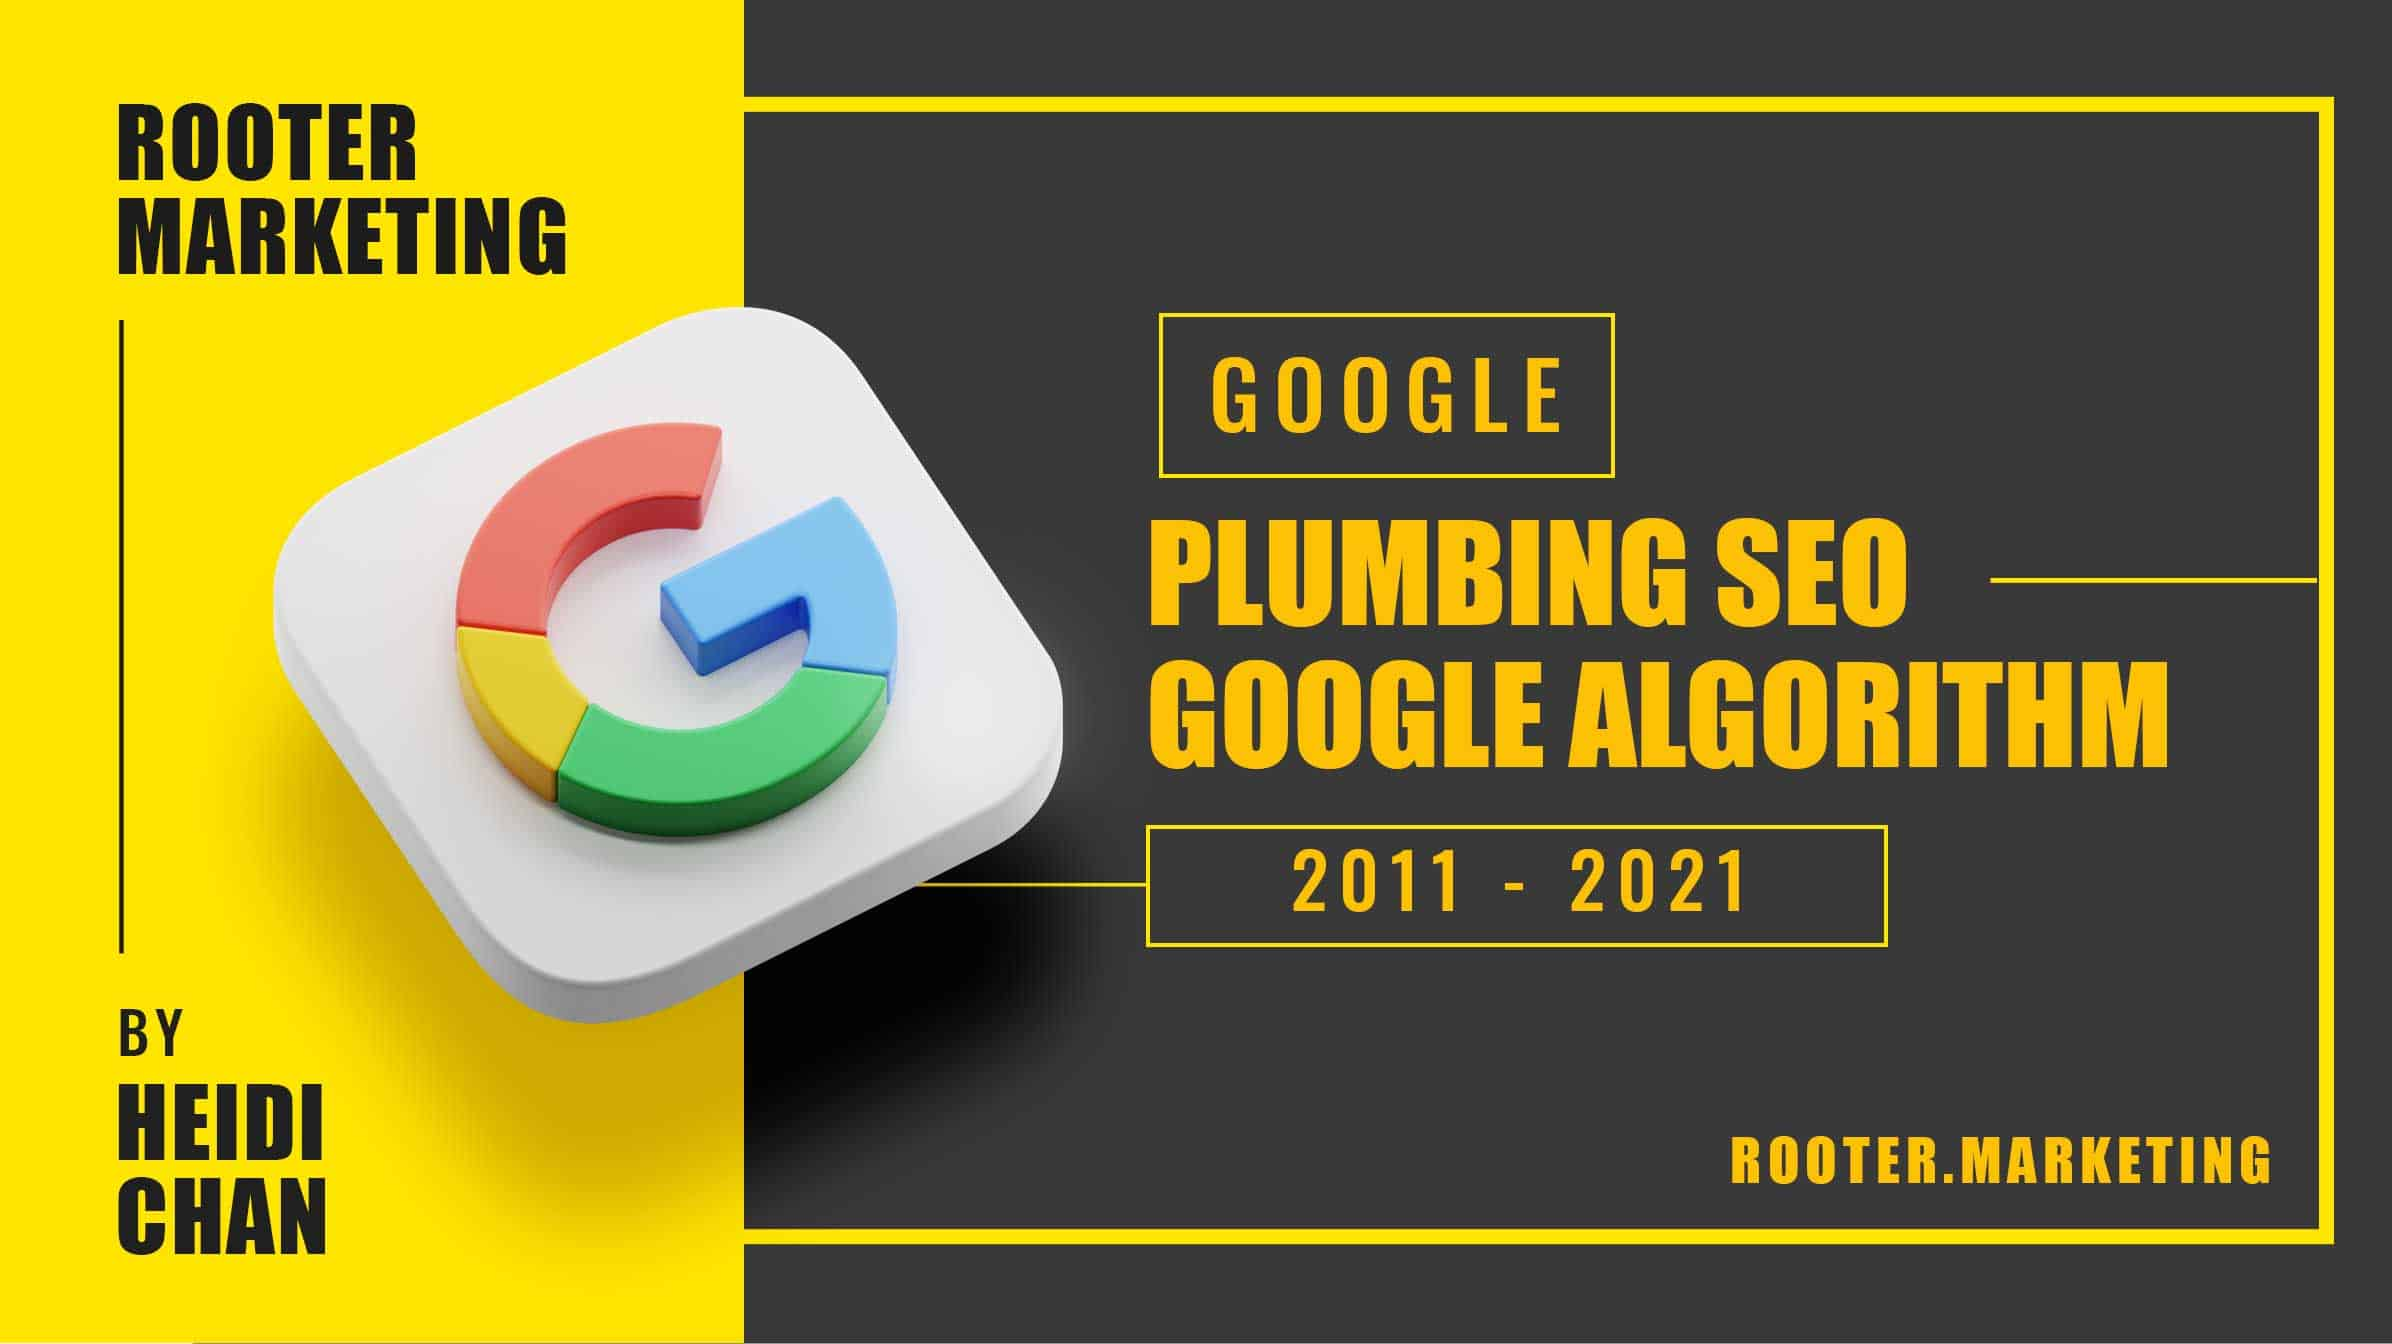 Knowing when major Google updates happen can help you improve your plumbing SEO strategy. Staying up to date on Google's SEO updates is a priority.